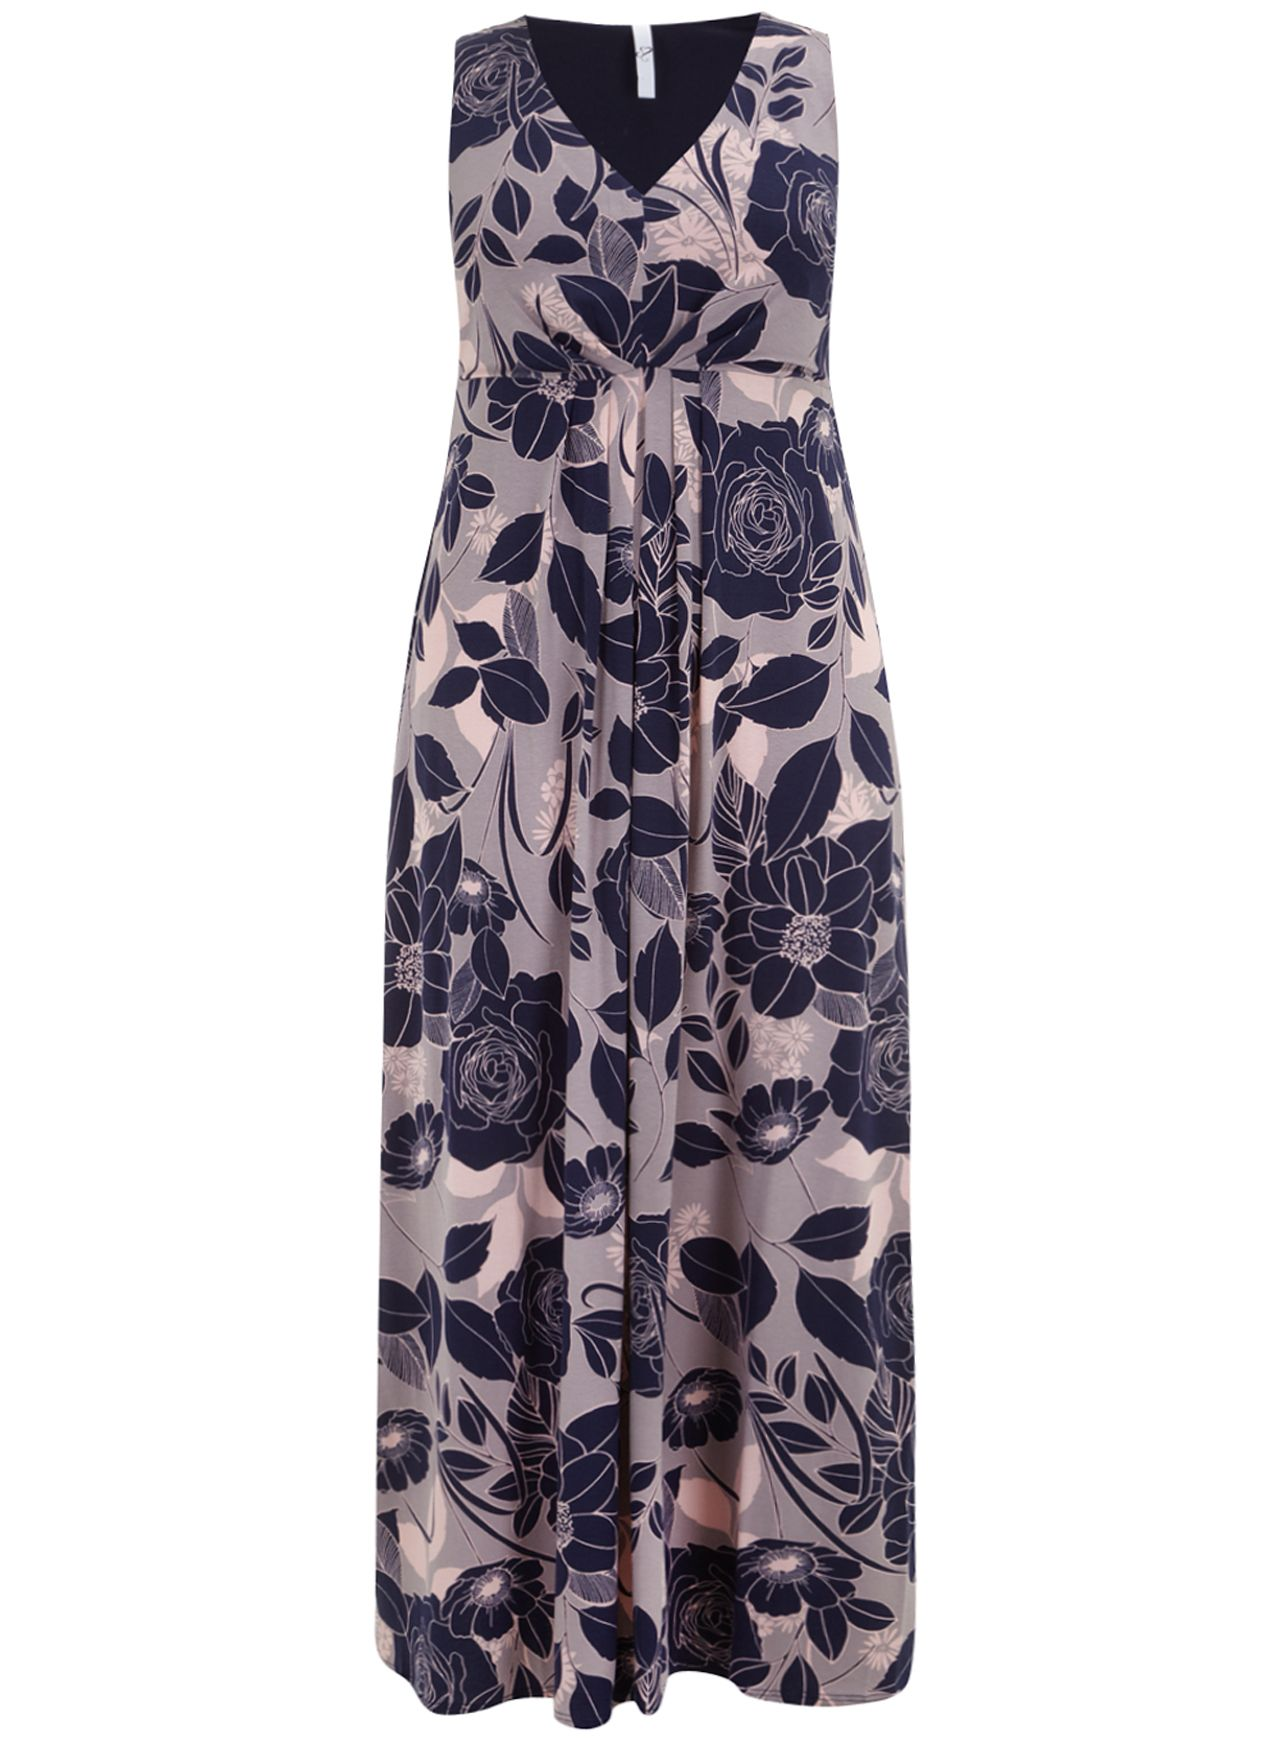 Dusky pink floral maxi dress